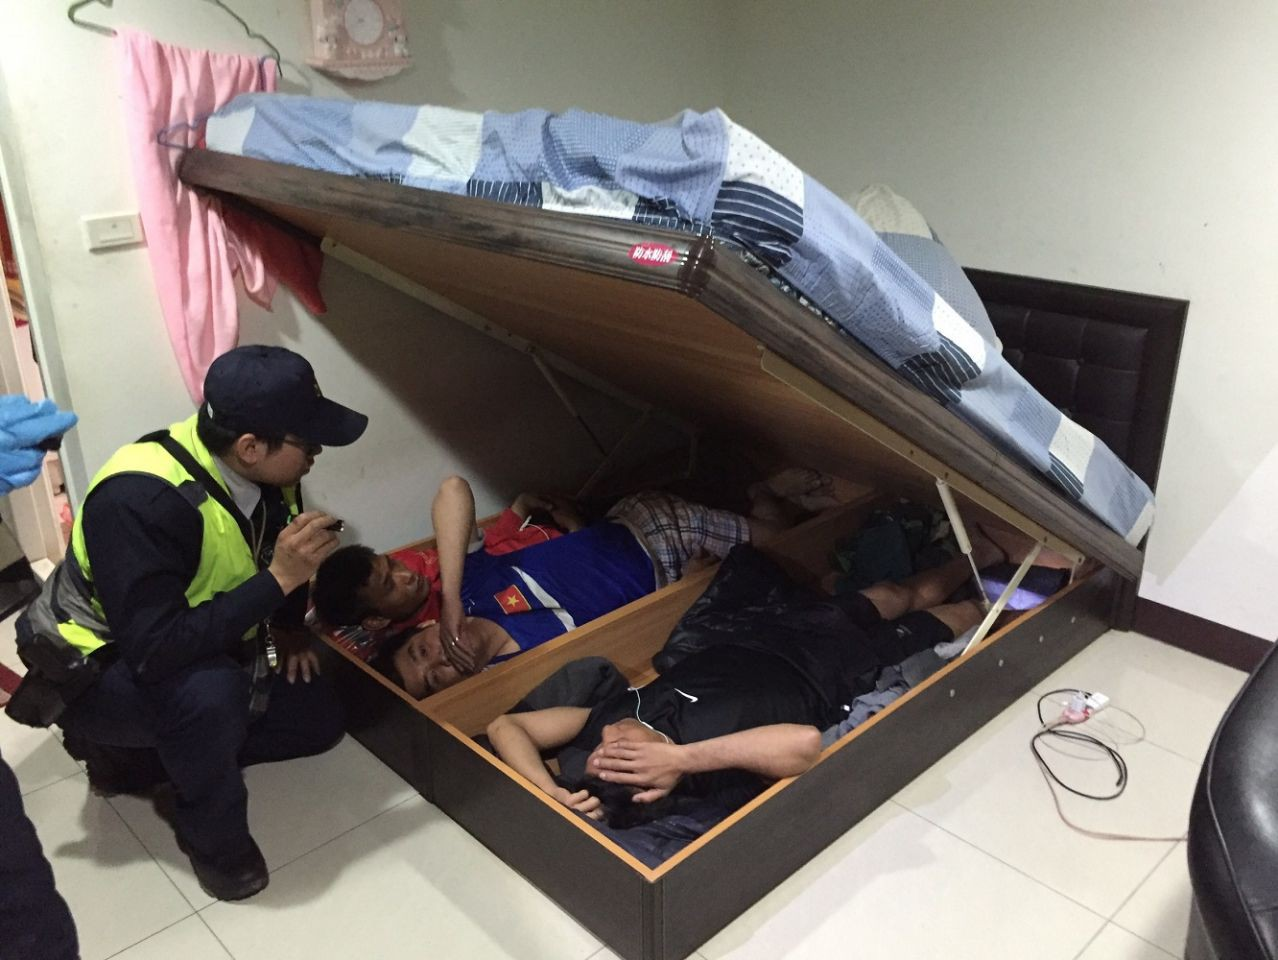 Taiwan has been arrested for using drugs, the Vietnamese has taken home for arresting 3 more people hiding beneath the bed - Photo 1